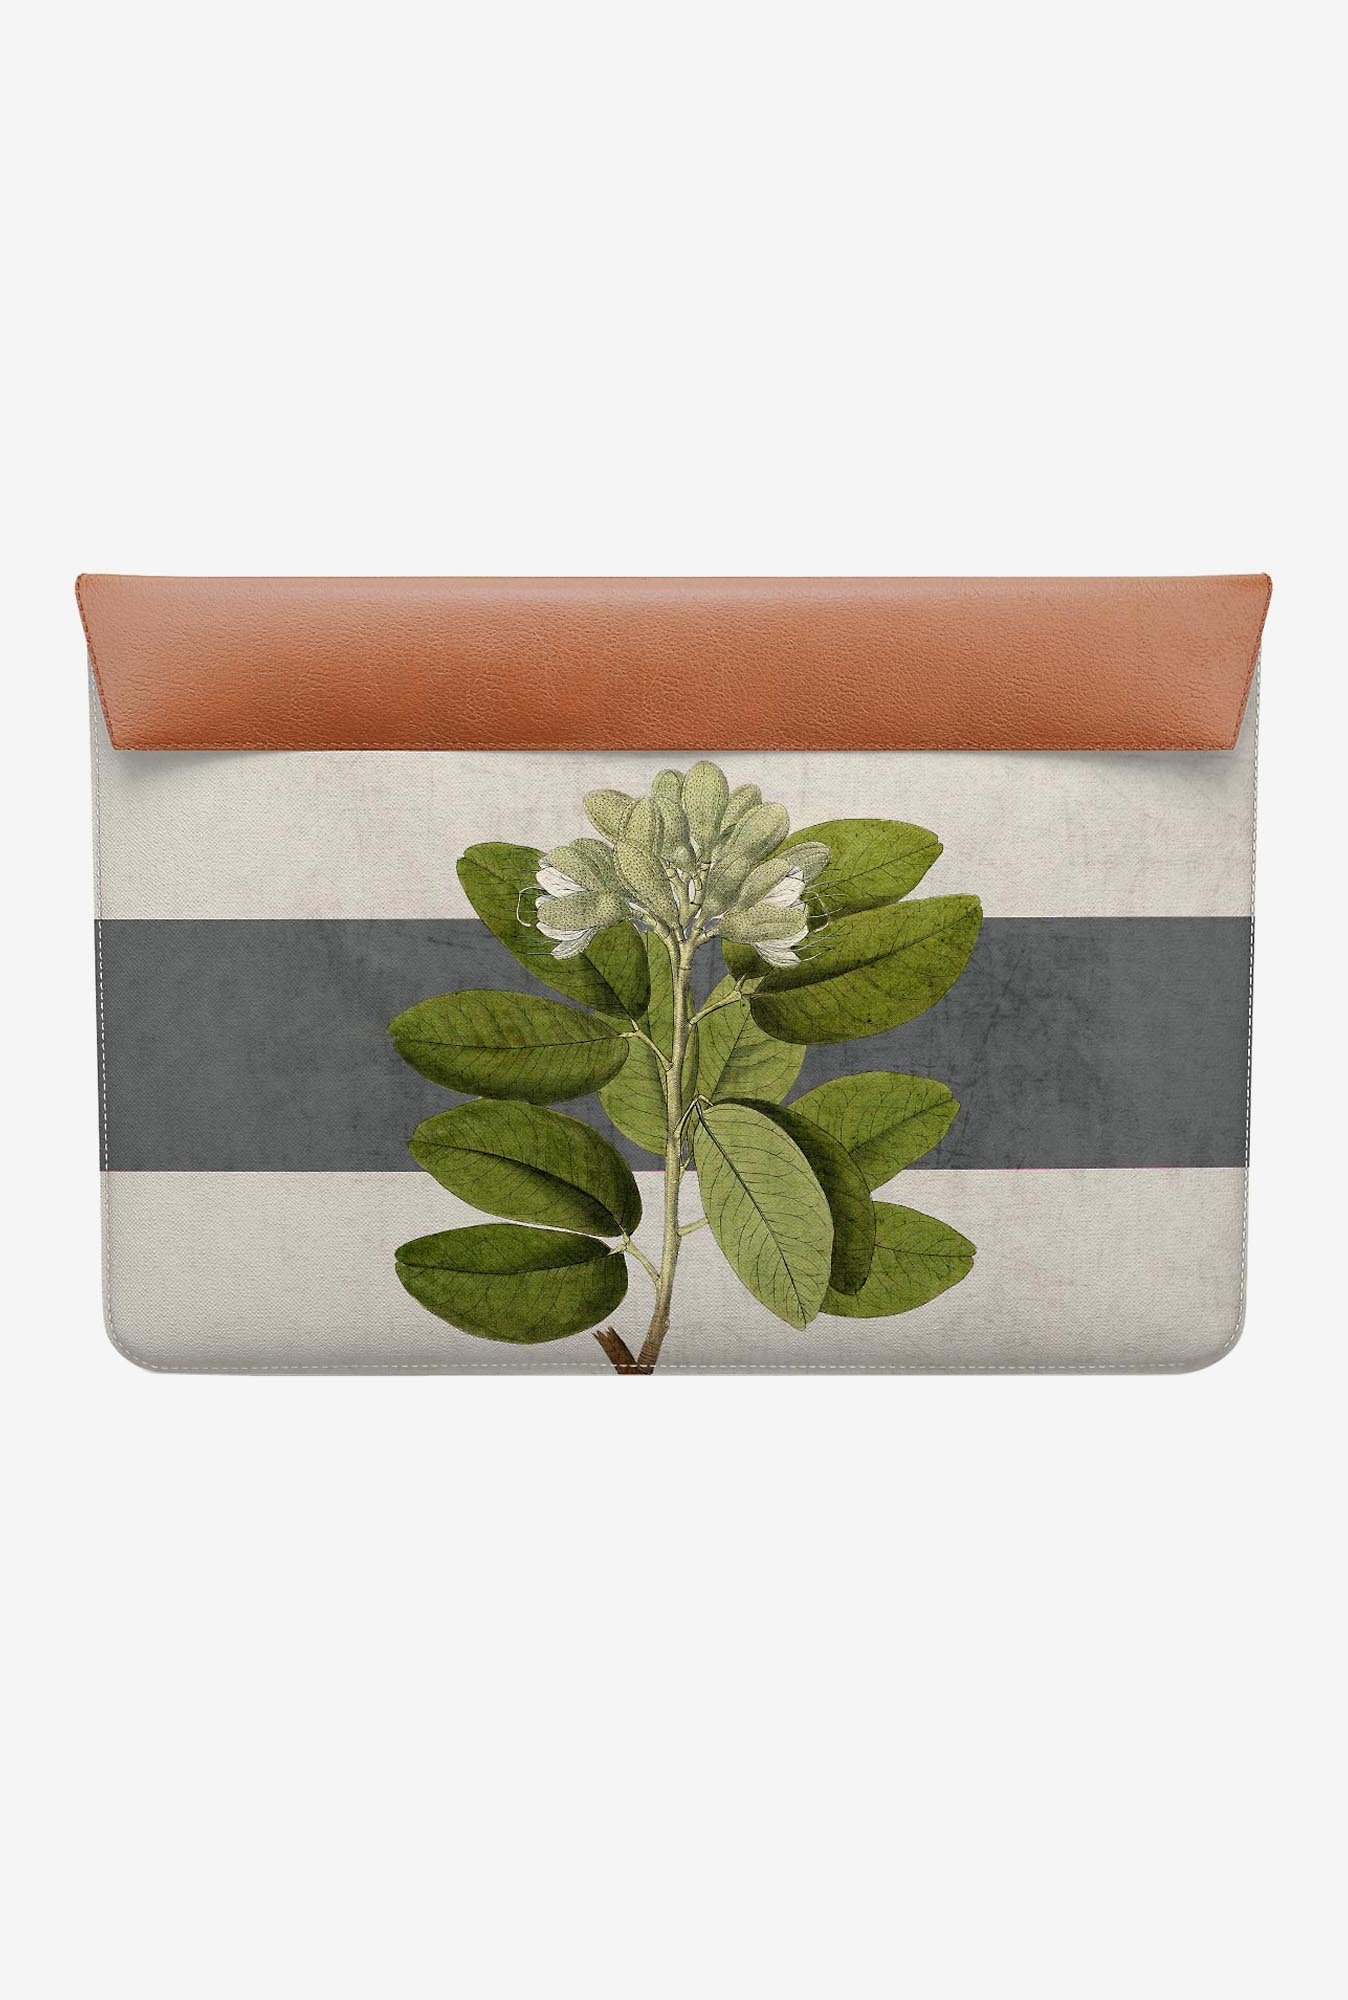 DailyObjects Botanical 5 MacBook Air 13 Envelope Sleeve